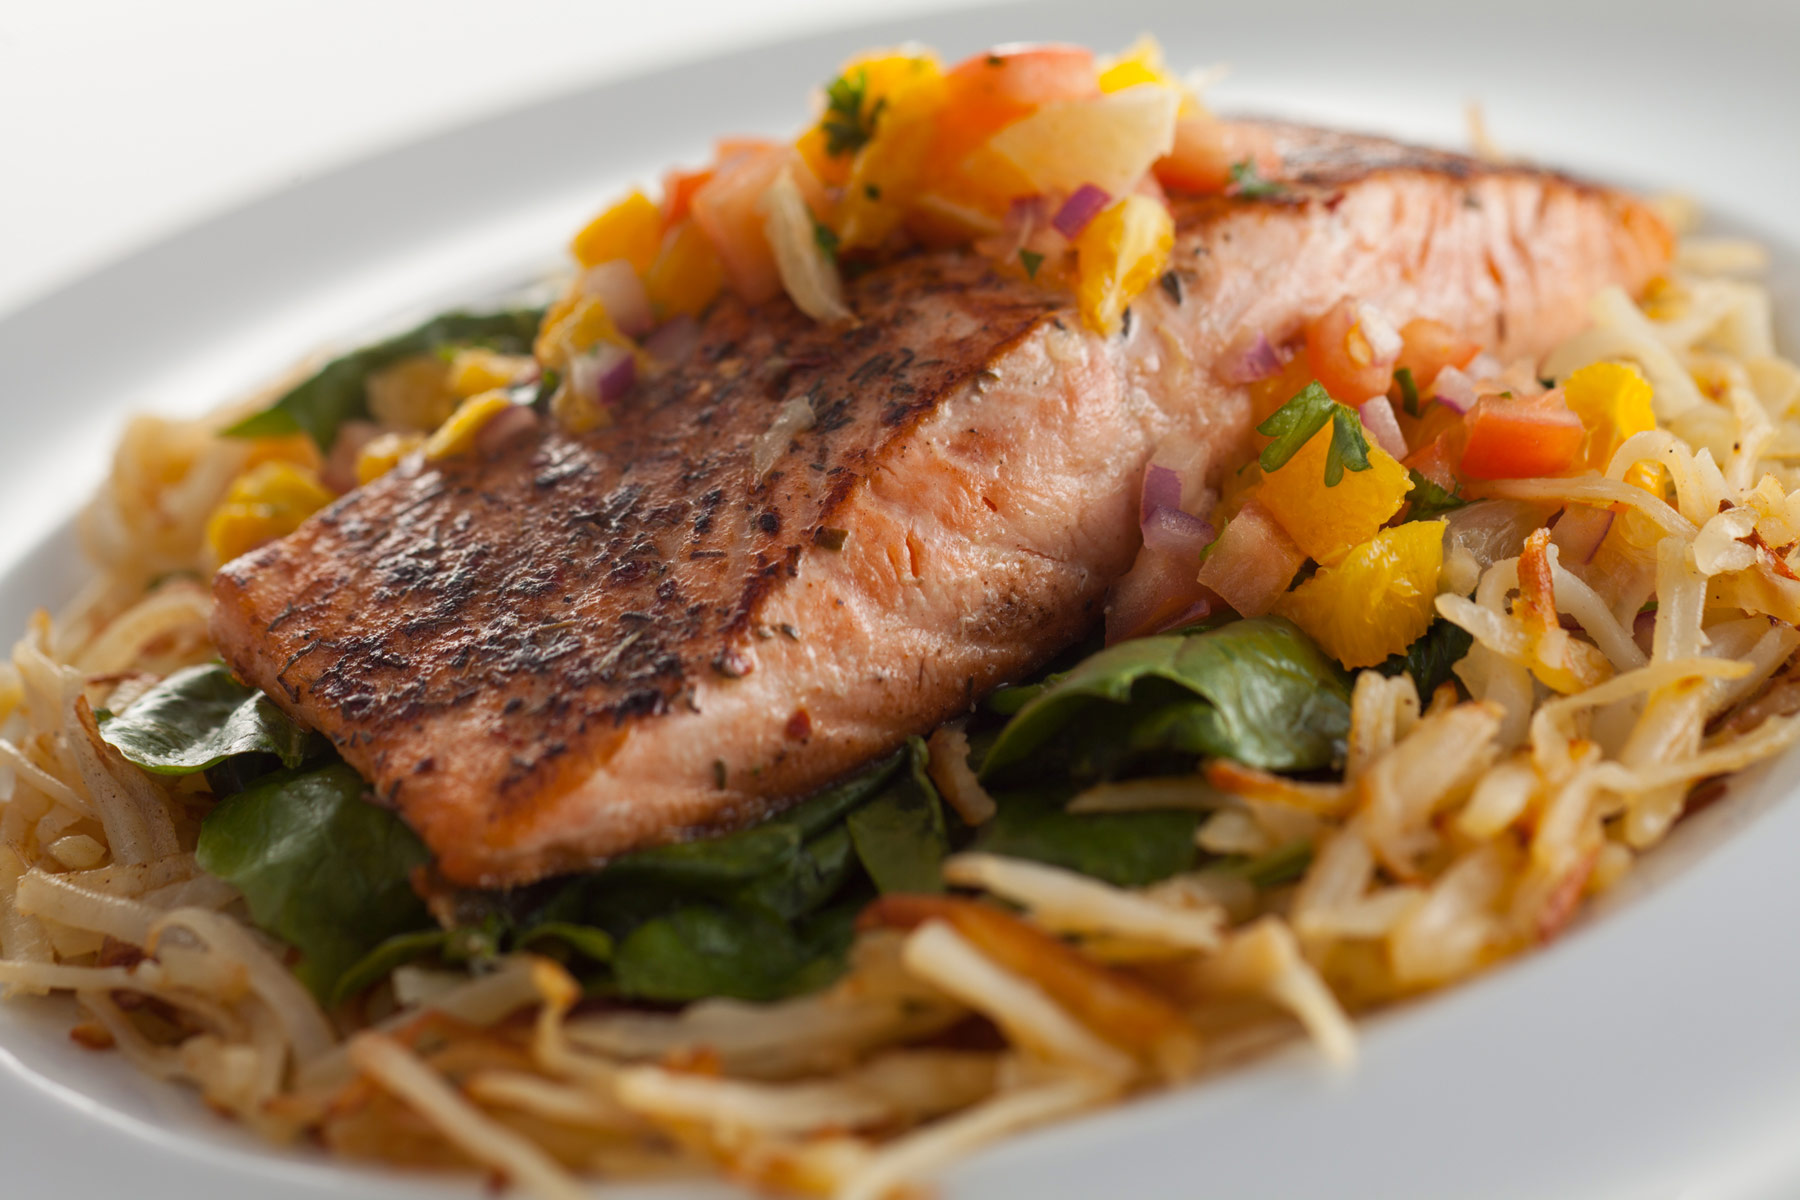 Grilled-Salmon-on-bed-of-vegetables-and-string-potatoes-Gun-Lake-Casino_100.jpg